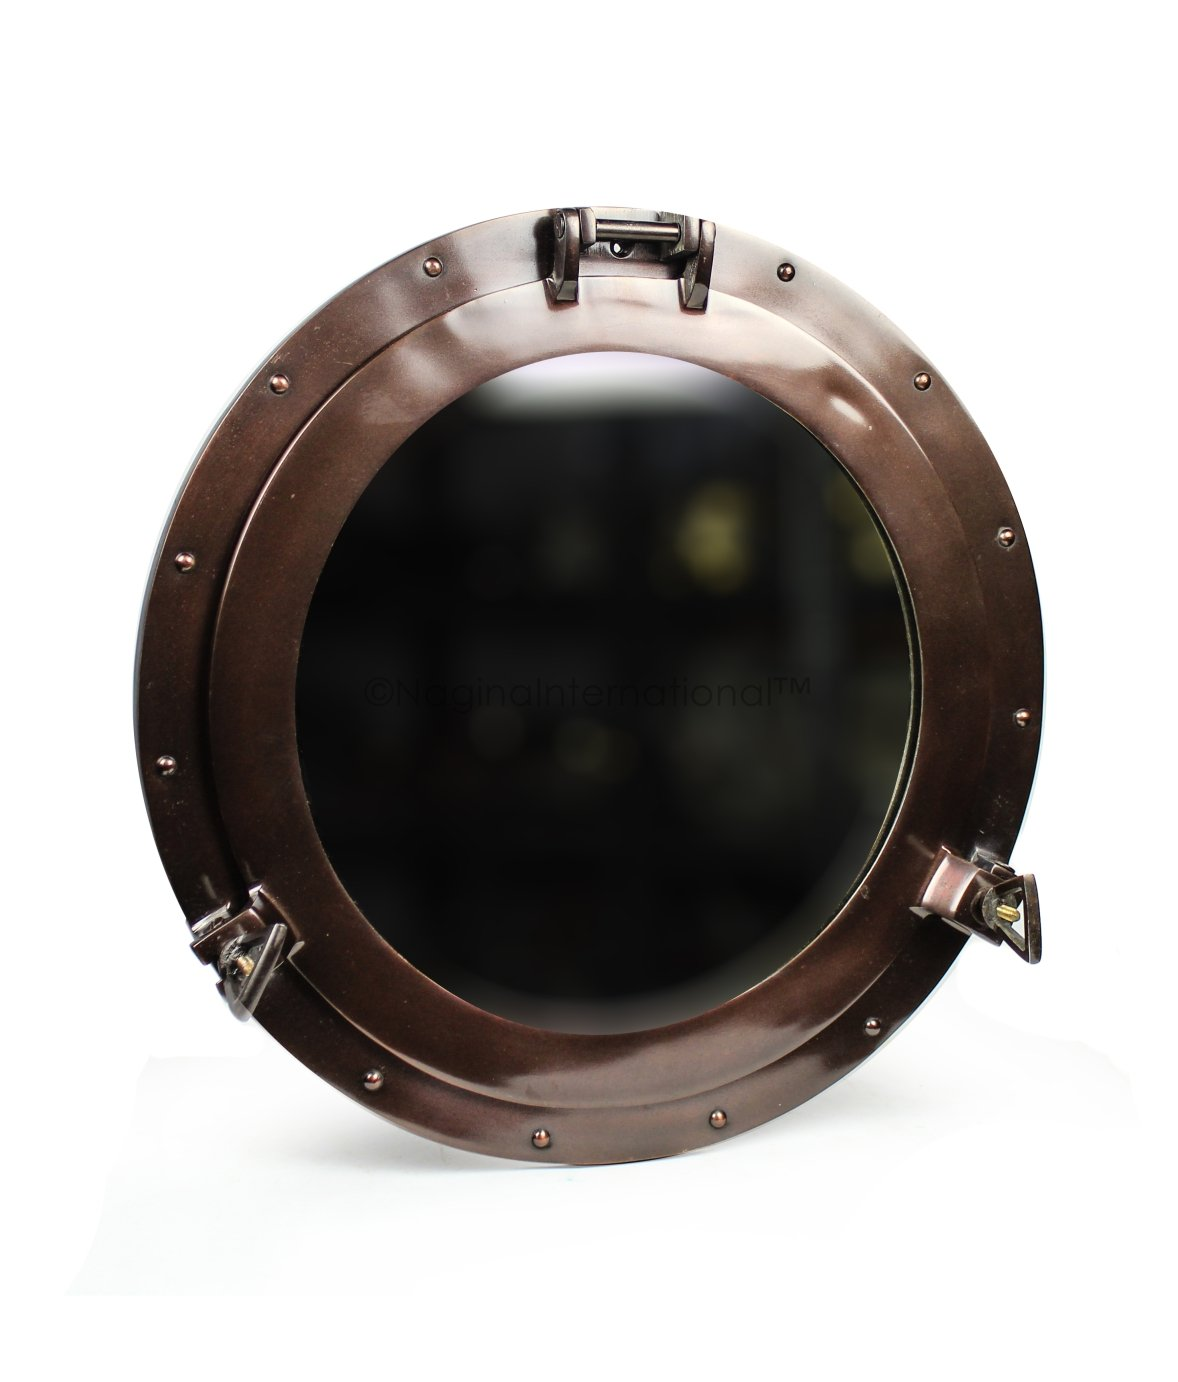 Nagina International Nautical Metal Crafted Coke Copper Finish Aluminum Porthole Mirror | Antique Pirate's Gift (8 inches)